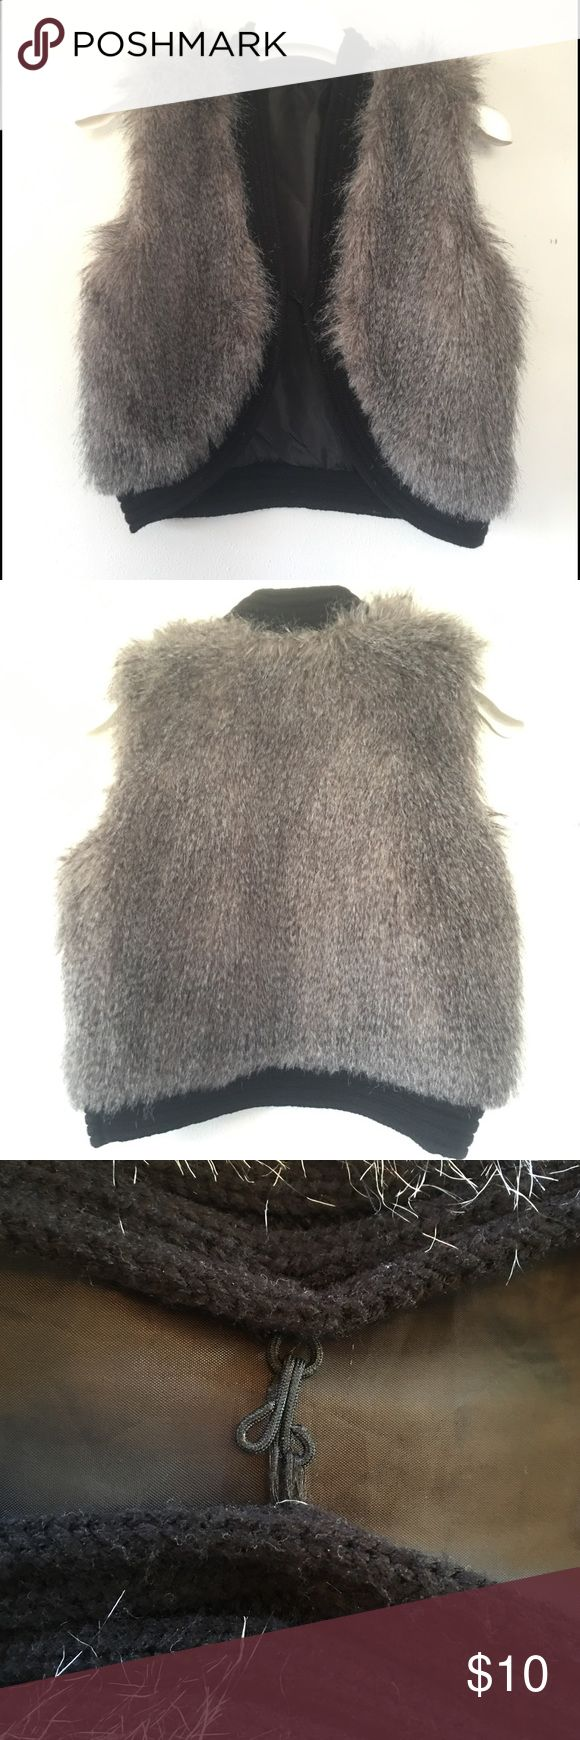 Faux Fur Vest Woman's short Style Beautiful piece that will compliment any wardrobe. Has small clasp in the center. SMOKE FREE & PET FREE HOME  Jackets & Coats Vests